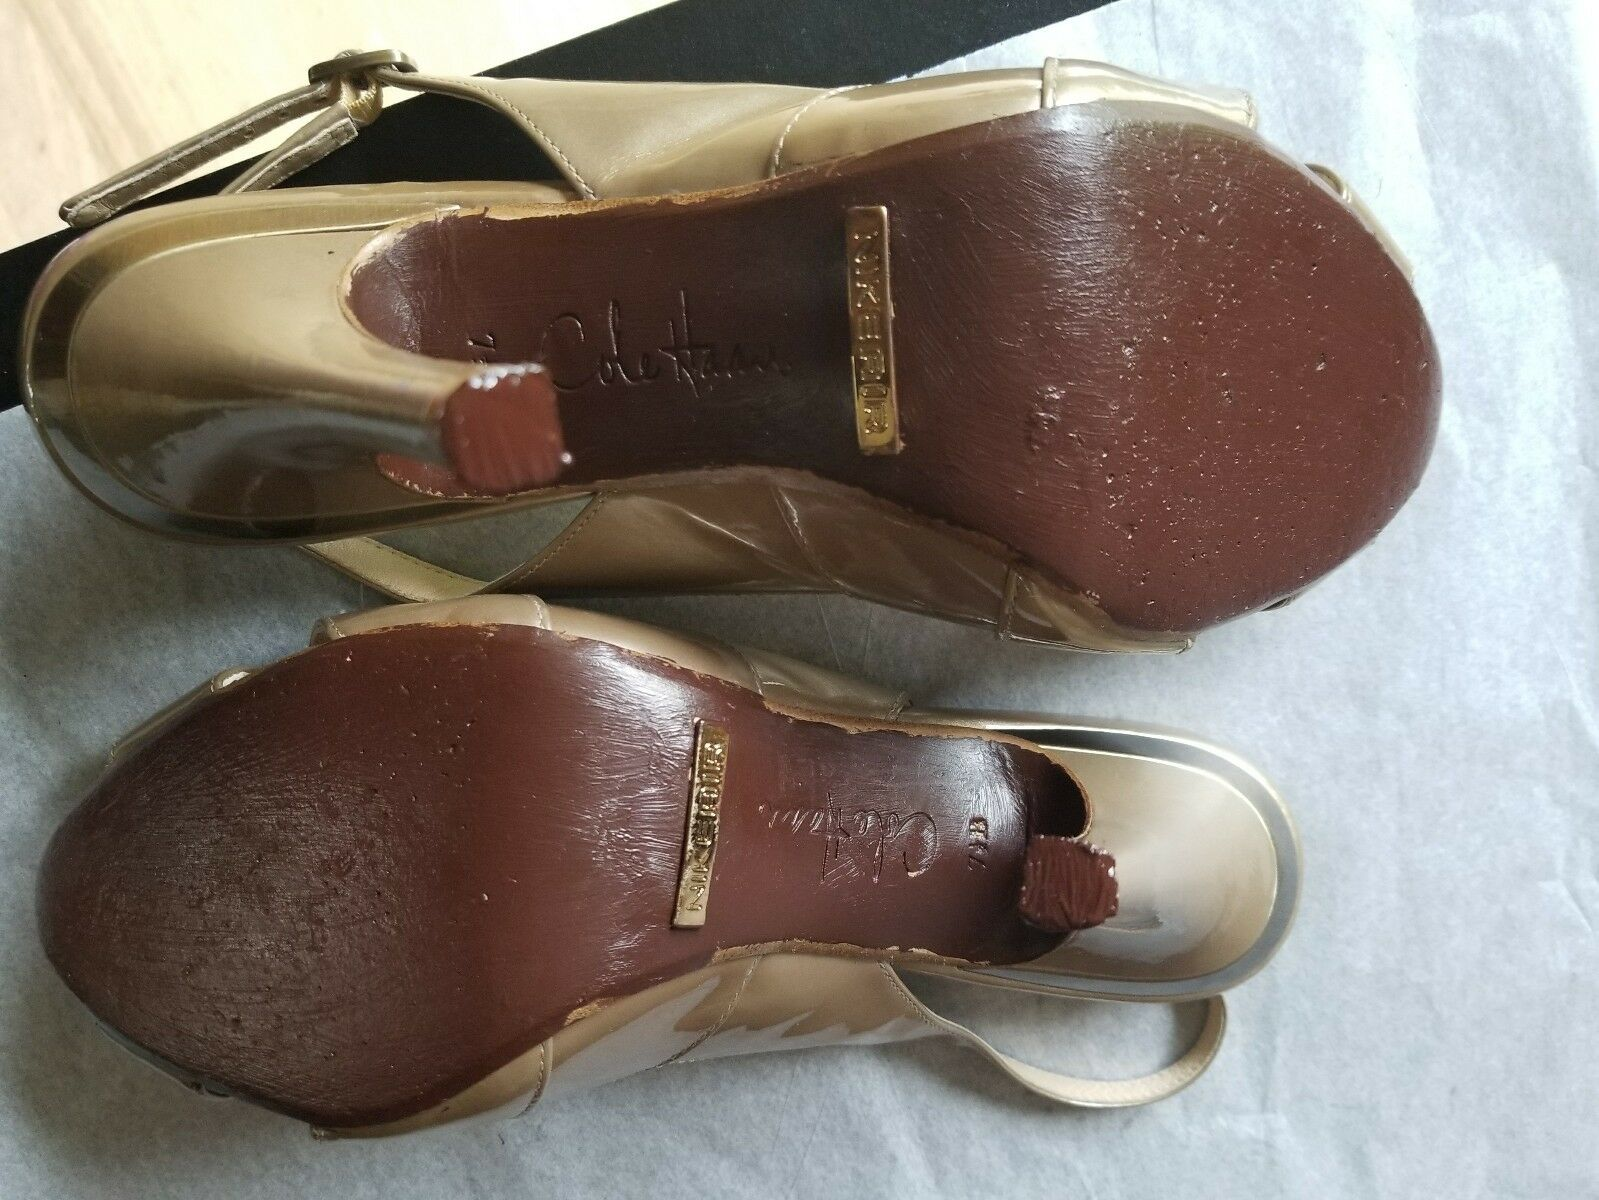 Cole Haan NikeAir nude formal formal formal slingbacks, Sz 7.5 B 13045b